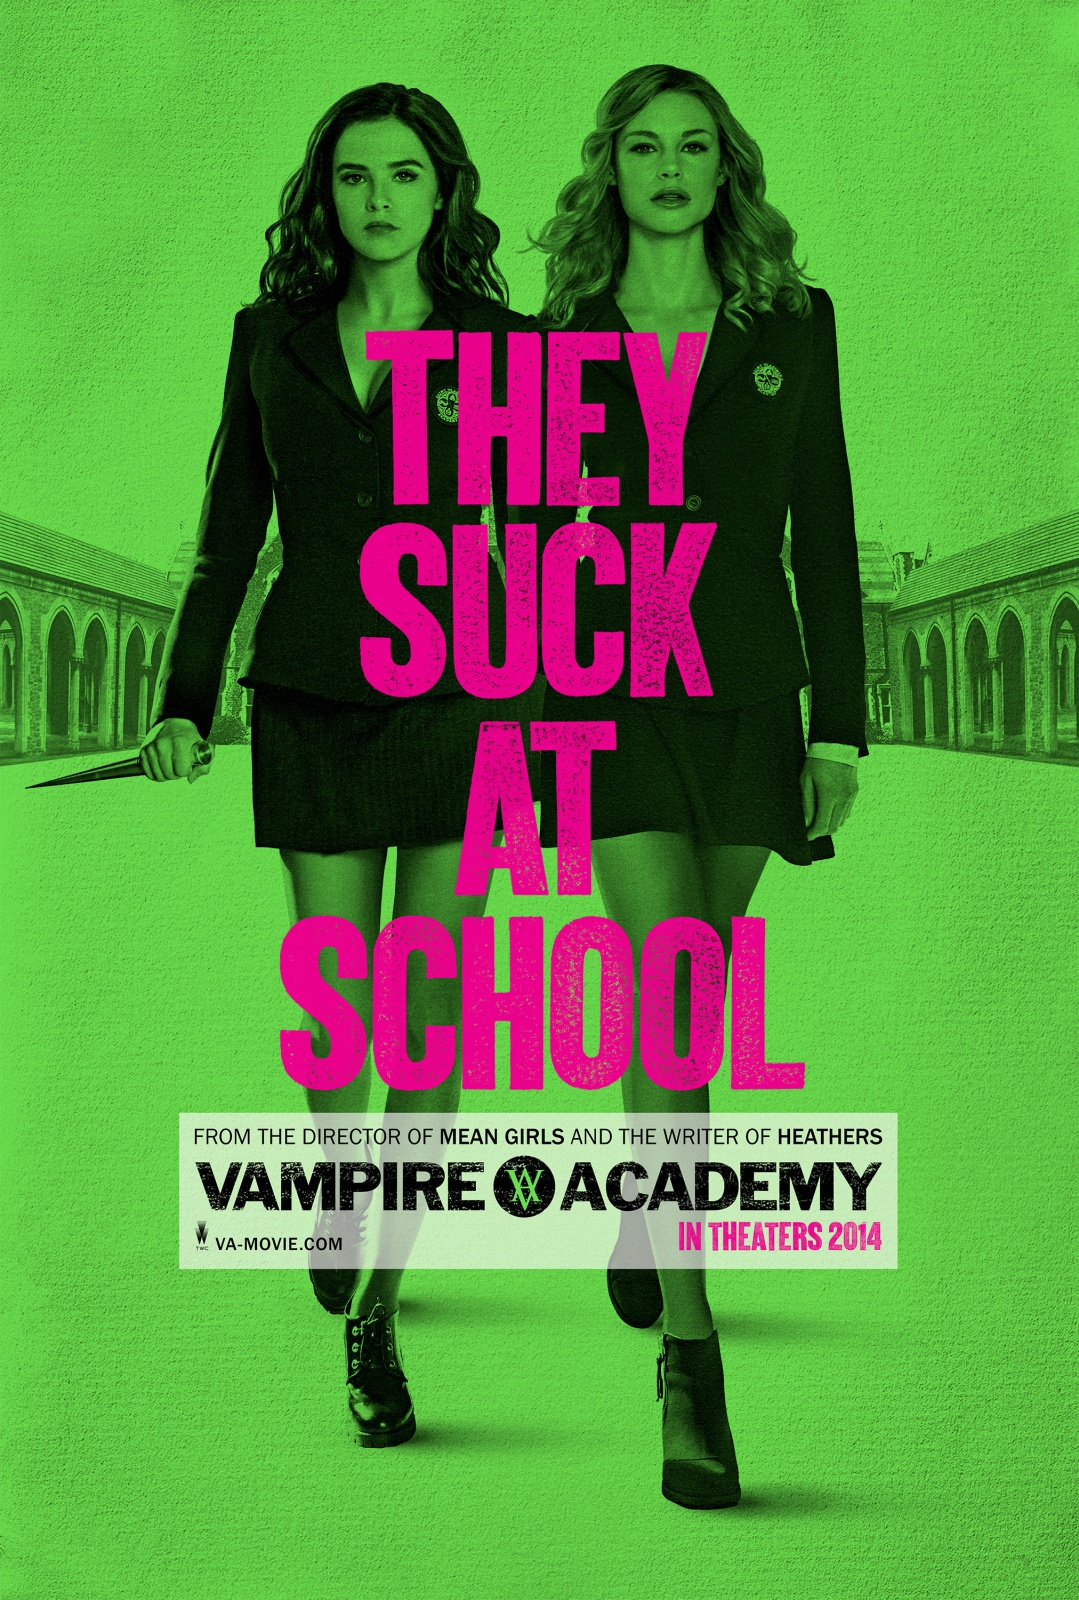 Vampire-Academy-2014-Movie-Poster